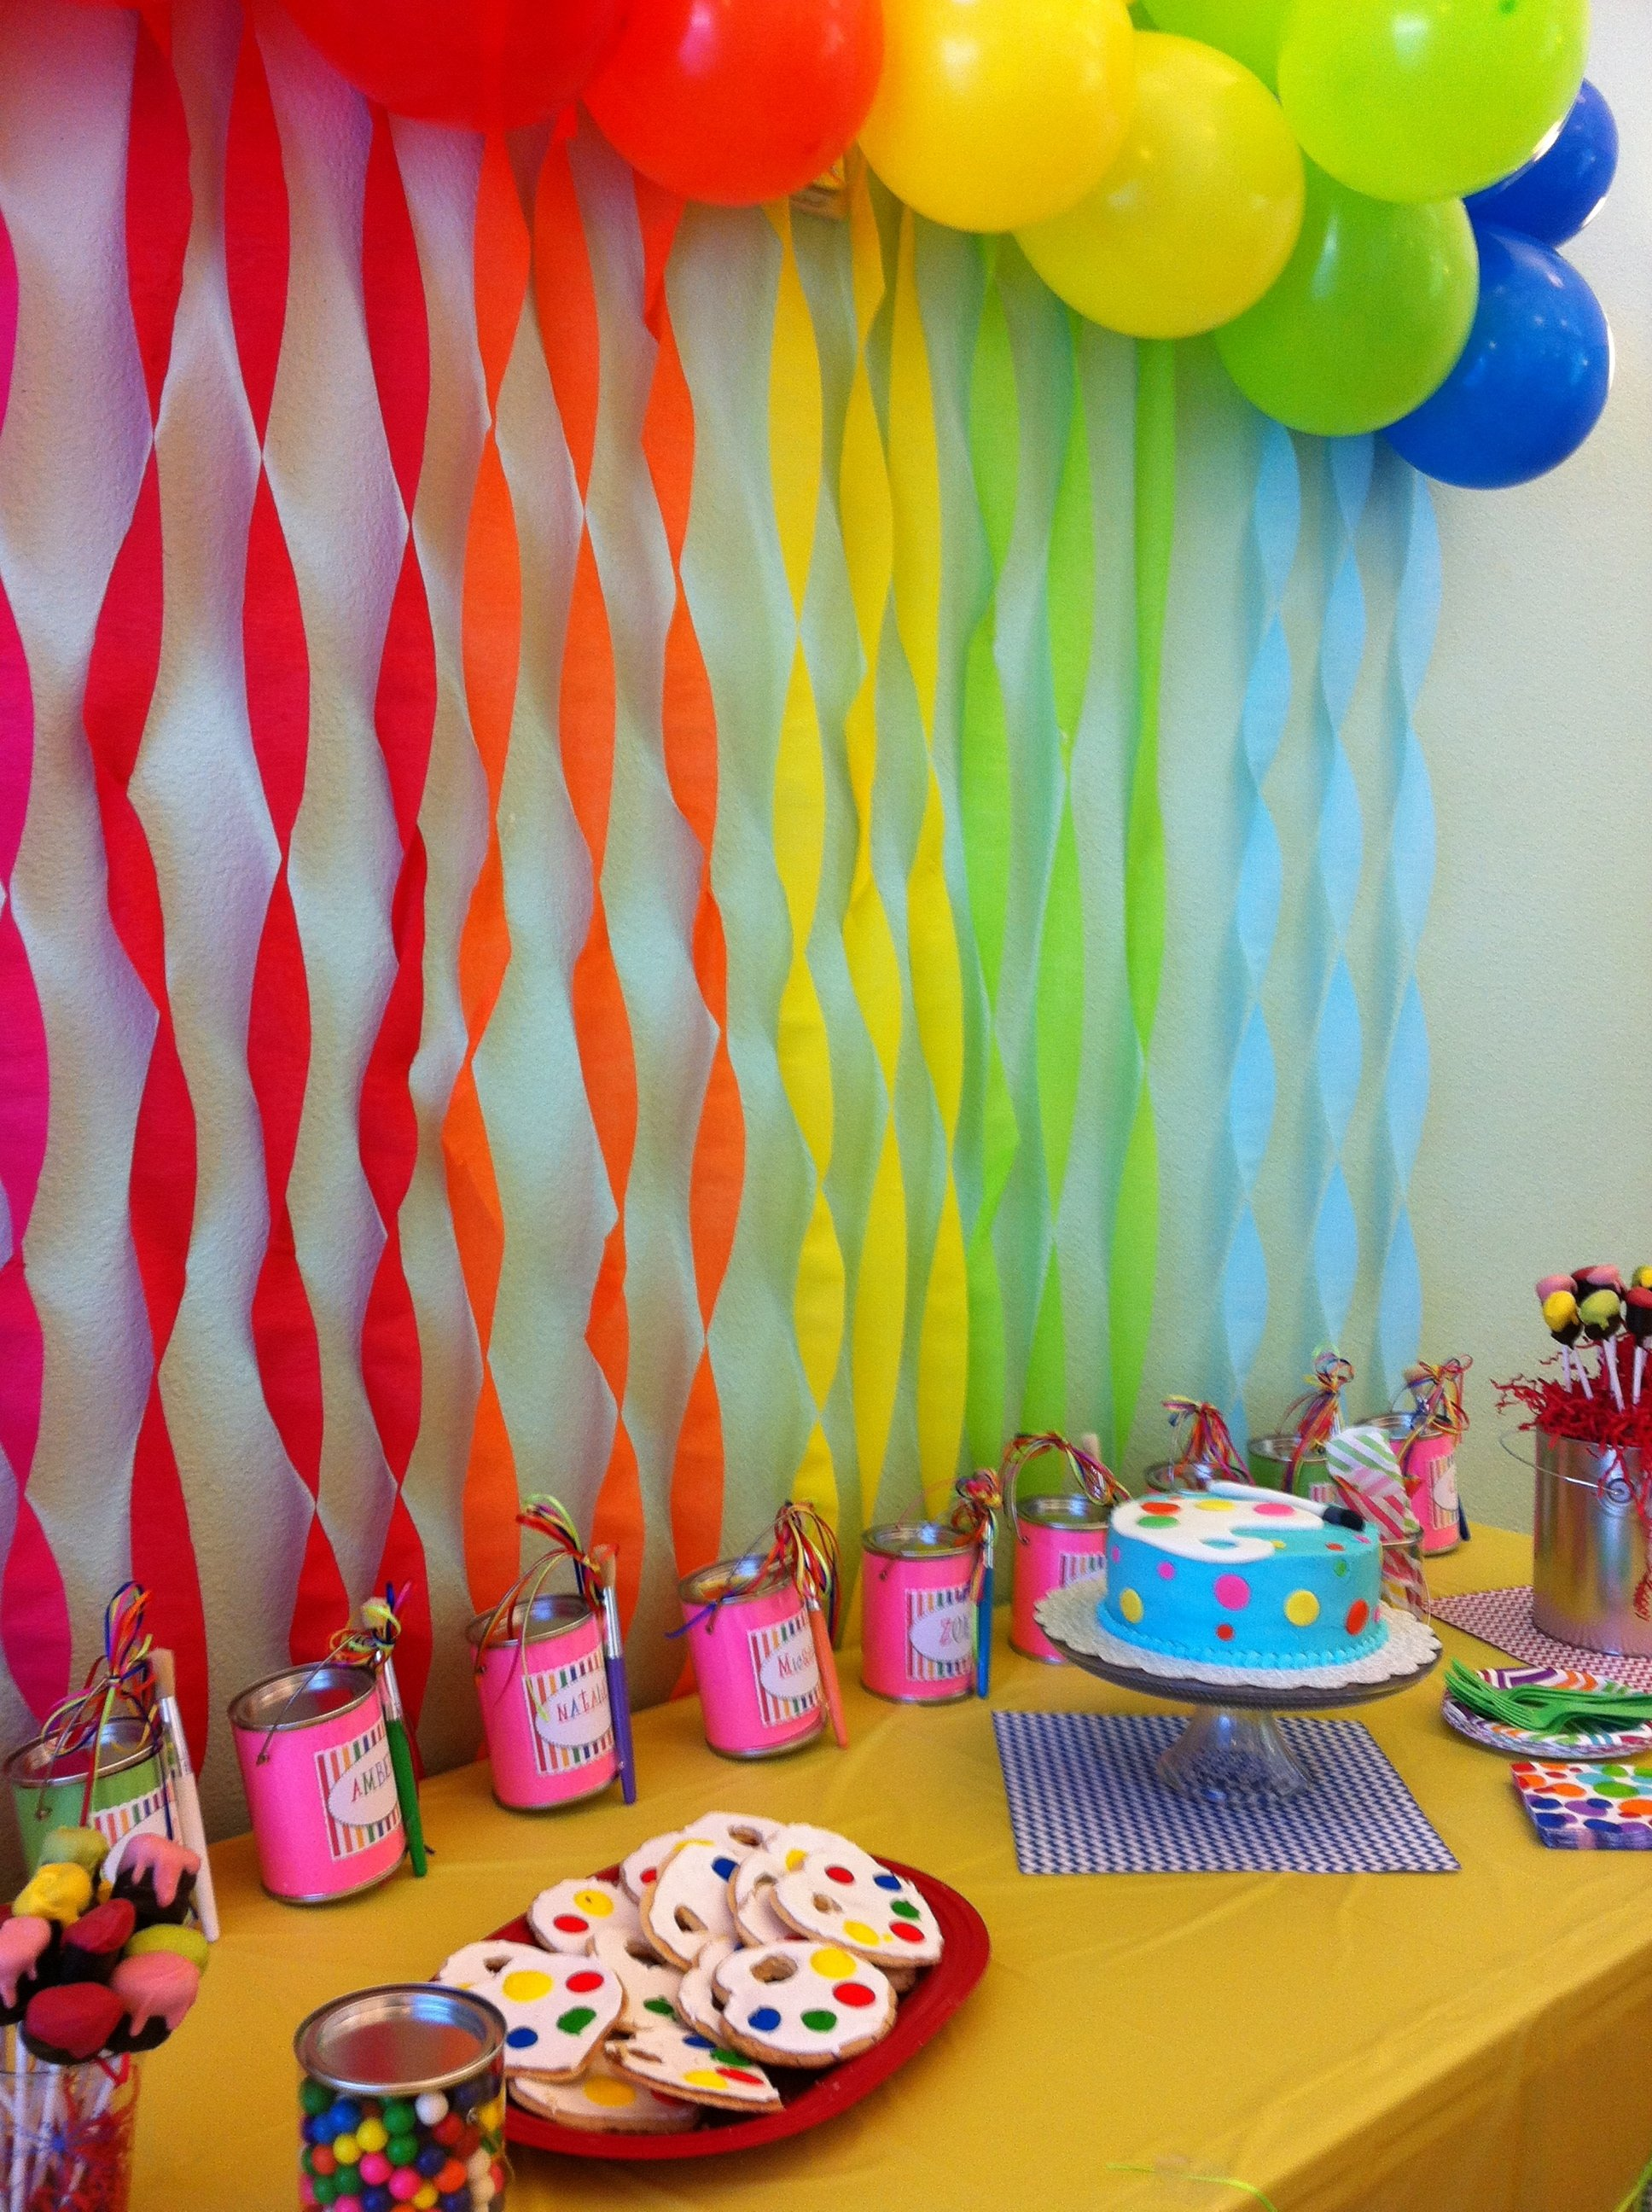 10 Stylish Birthday Party Ideas For A 3 Year Old dazzling 3 year old birthday party ideas at home 8 girl art 5 2021